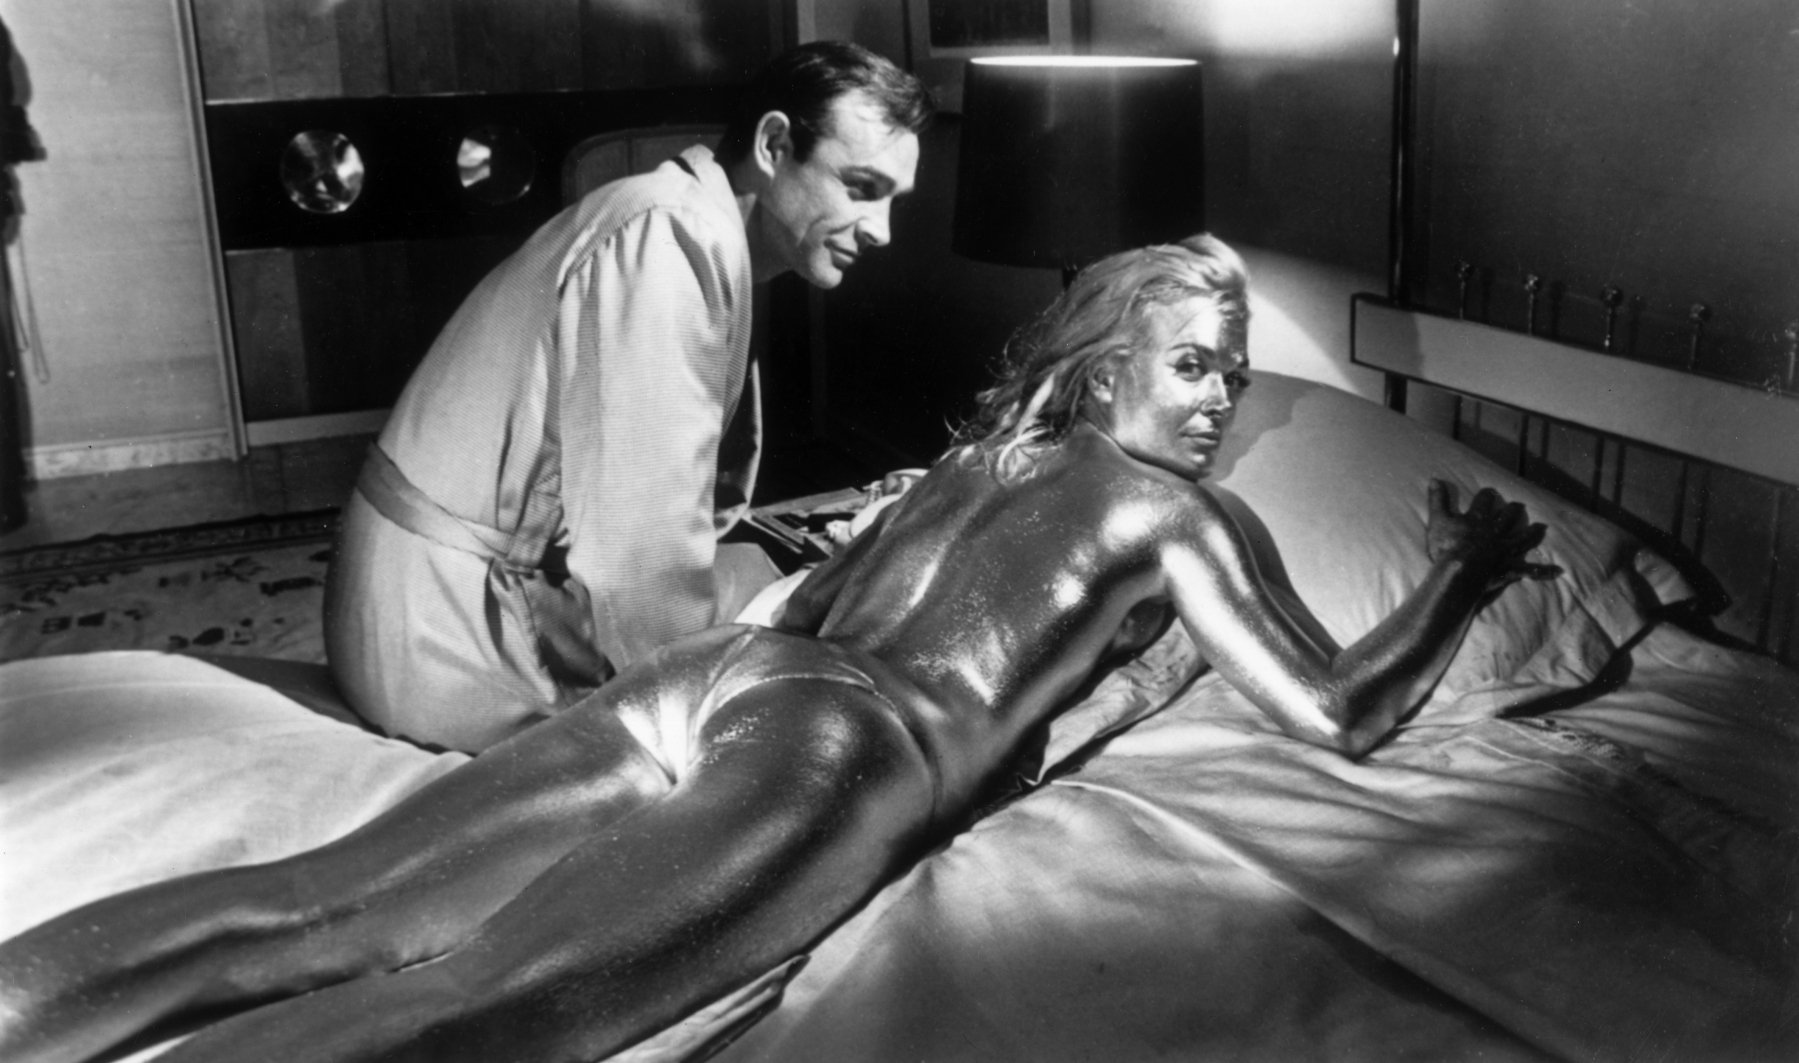 21st April 1964:  Sean Connery sitting beside his co-star English actress, Shirley Eaton, covered in gold during the filming of a scene from the James Bond film 'Goldfinger', directed by Guy Hamilton.  (Photo by Keystone/Getty Images)